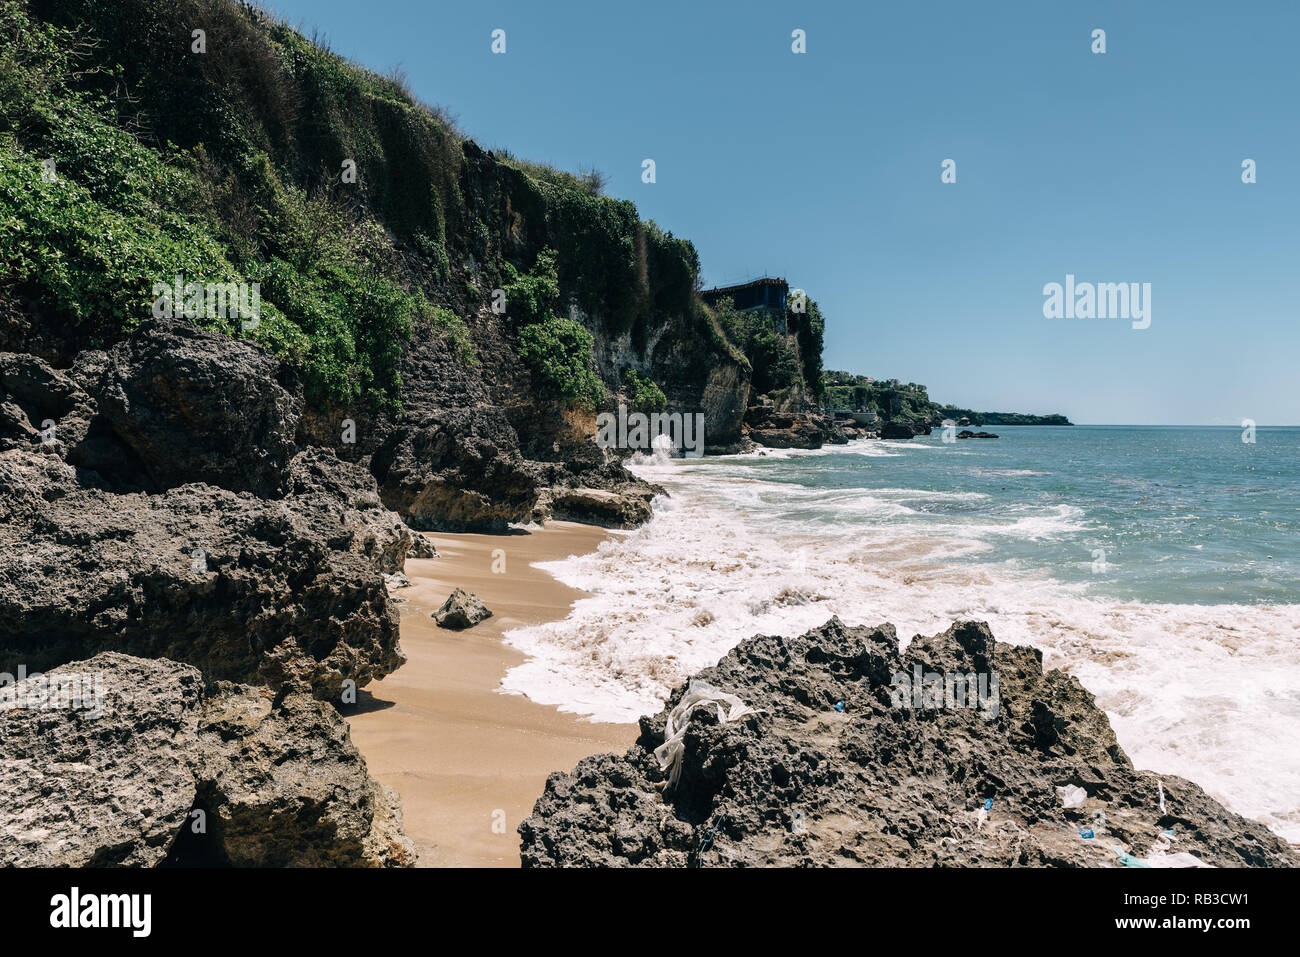 Beach on Bali, Indonesia called Pantai Tegal Wangi. Sunny clear weather. Big cliffs with houses, blue sky and ocean with waves - Stock Image